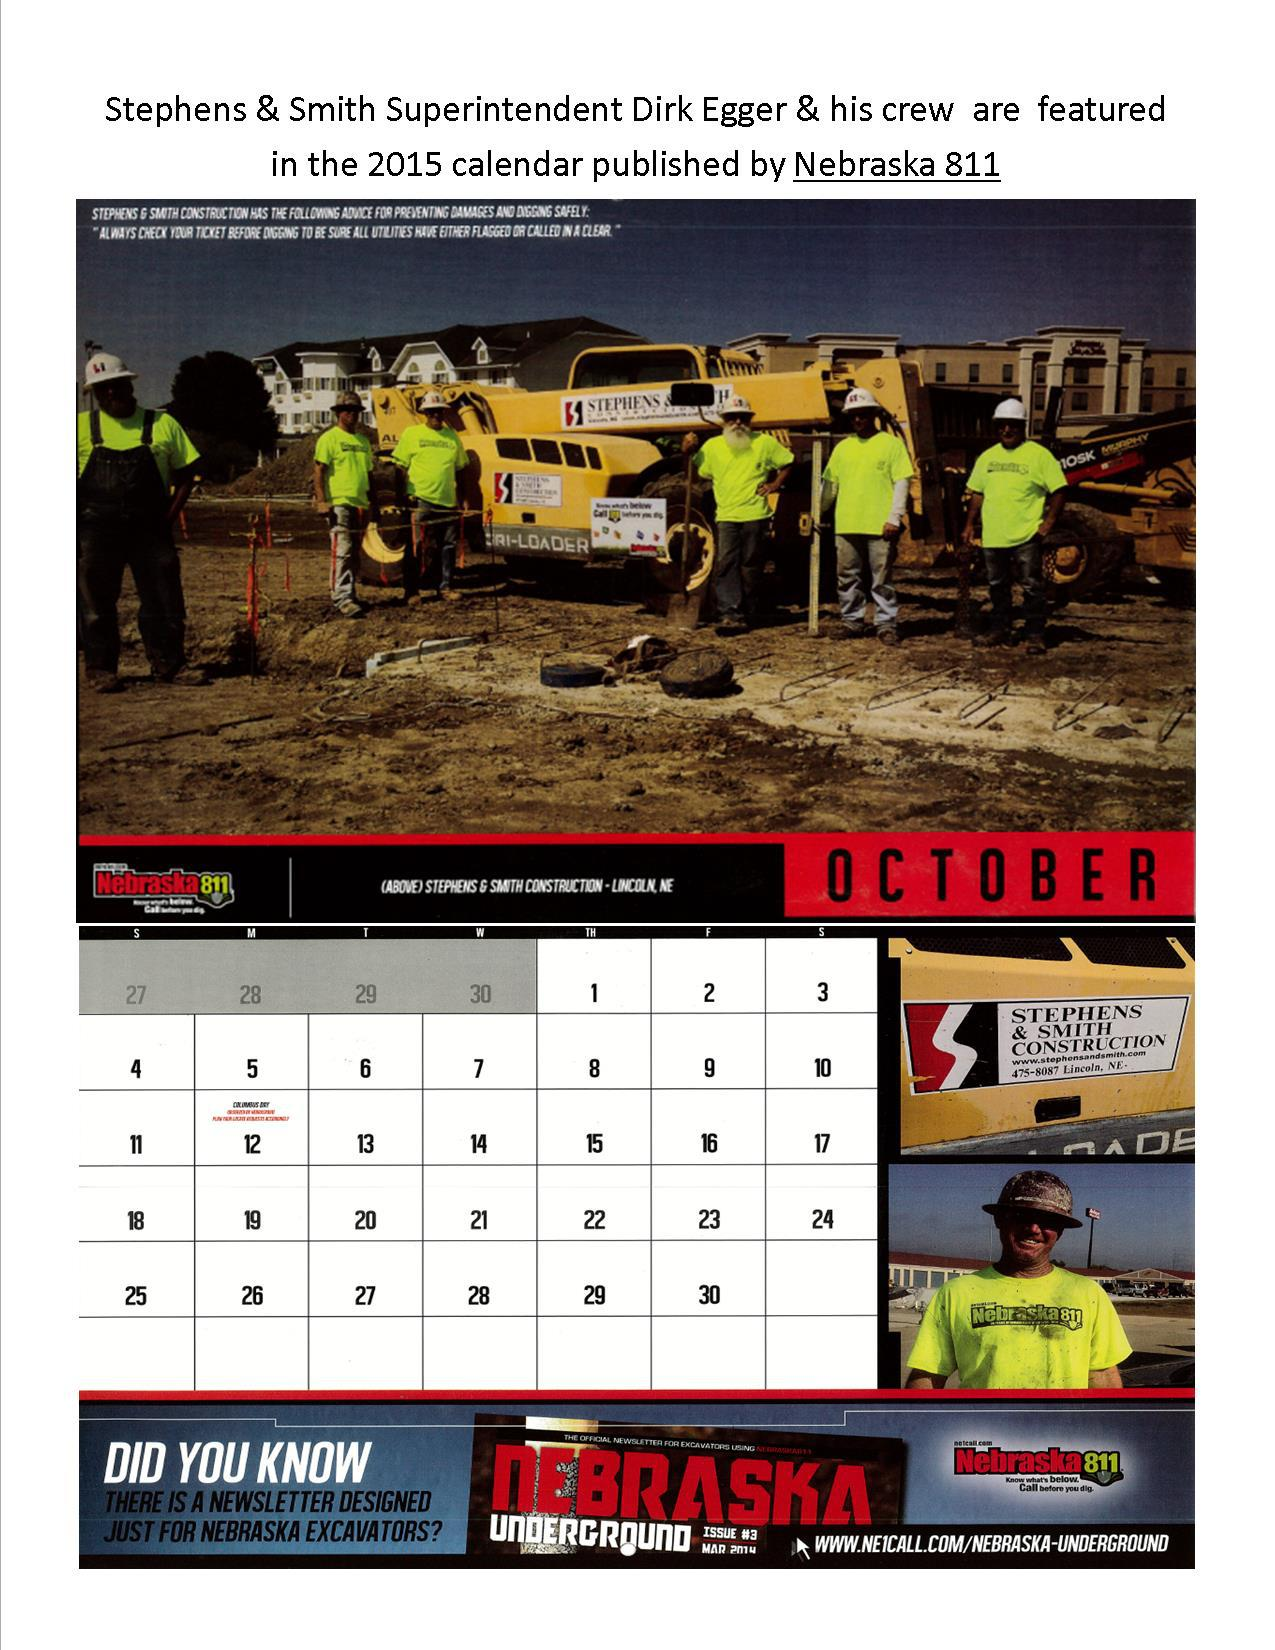 2015 calendar publication in Lincoln, NE